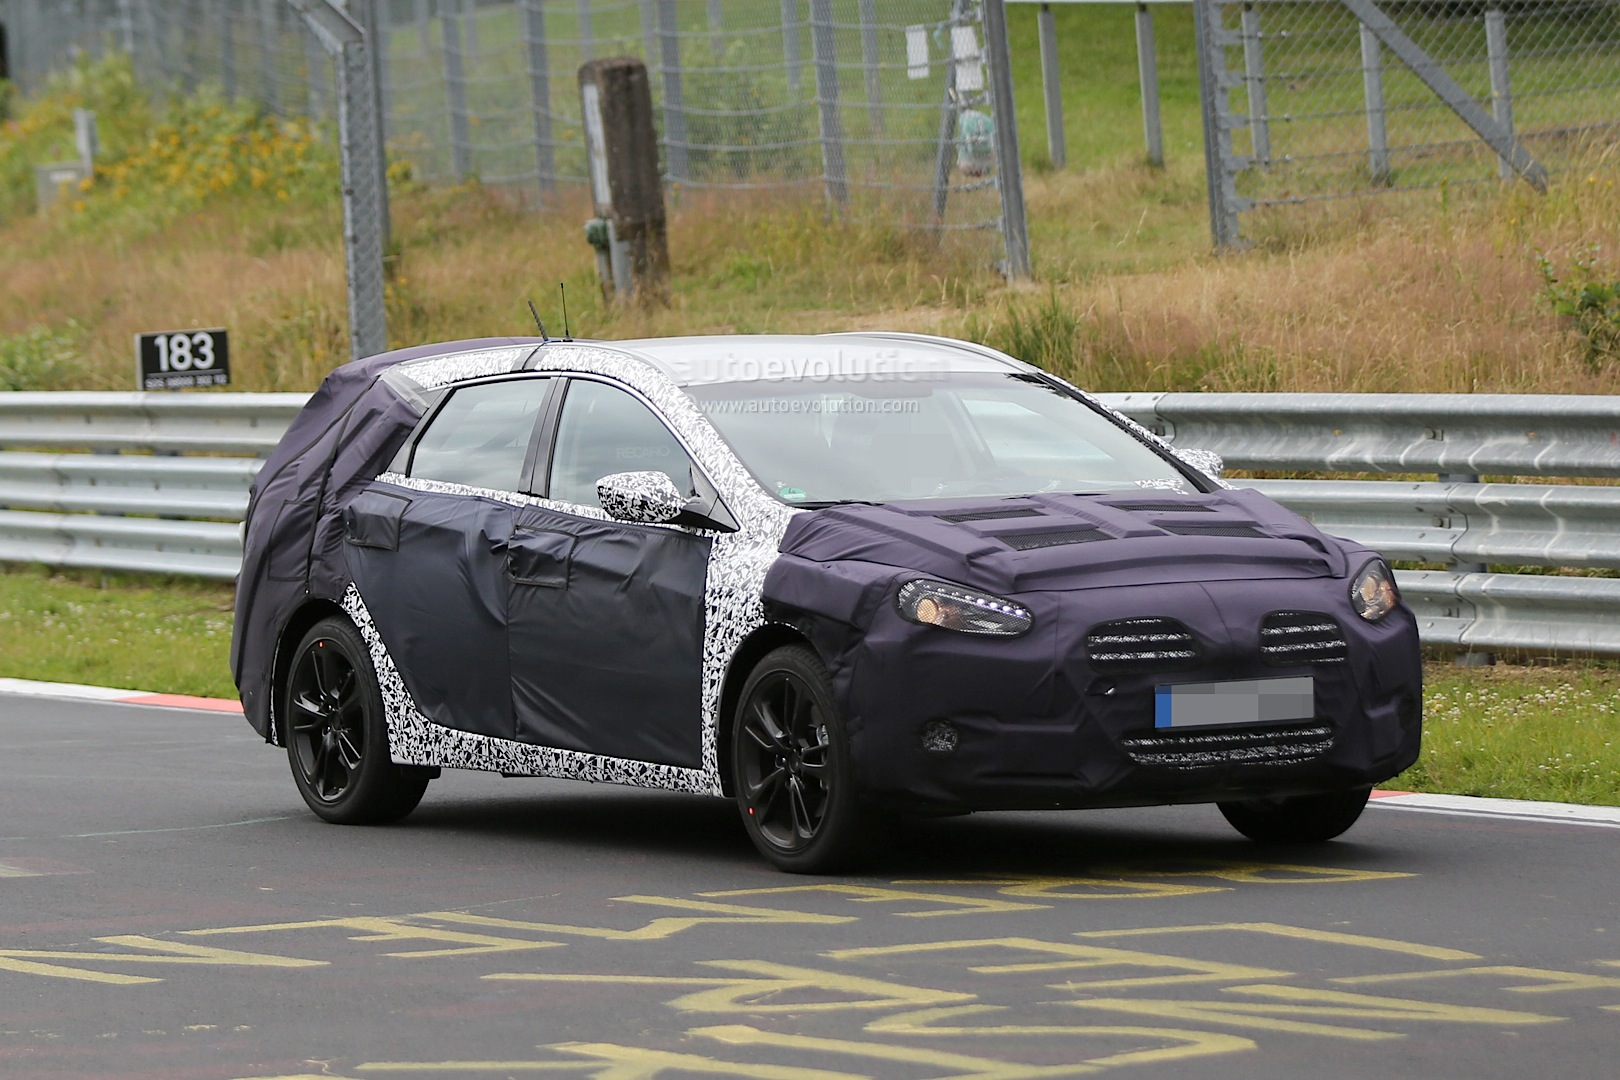 spyshots 2015 hyundai i40 facelift begins nurburgring testing autoevolution. Black Bedroom Furniture Sets. Home Design Ideas